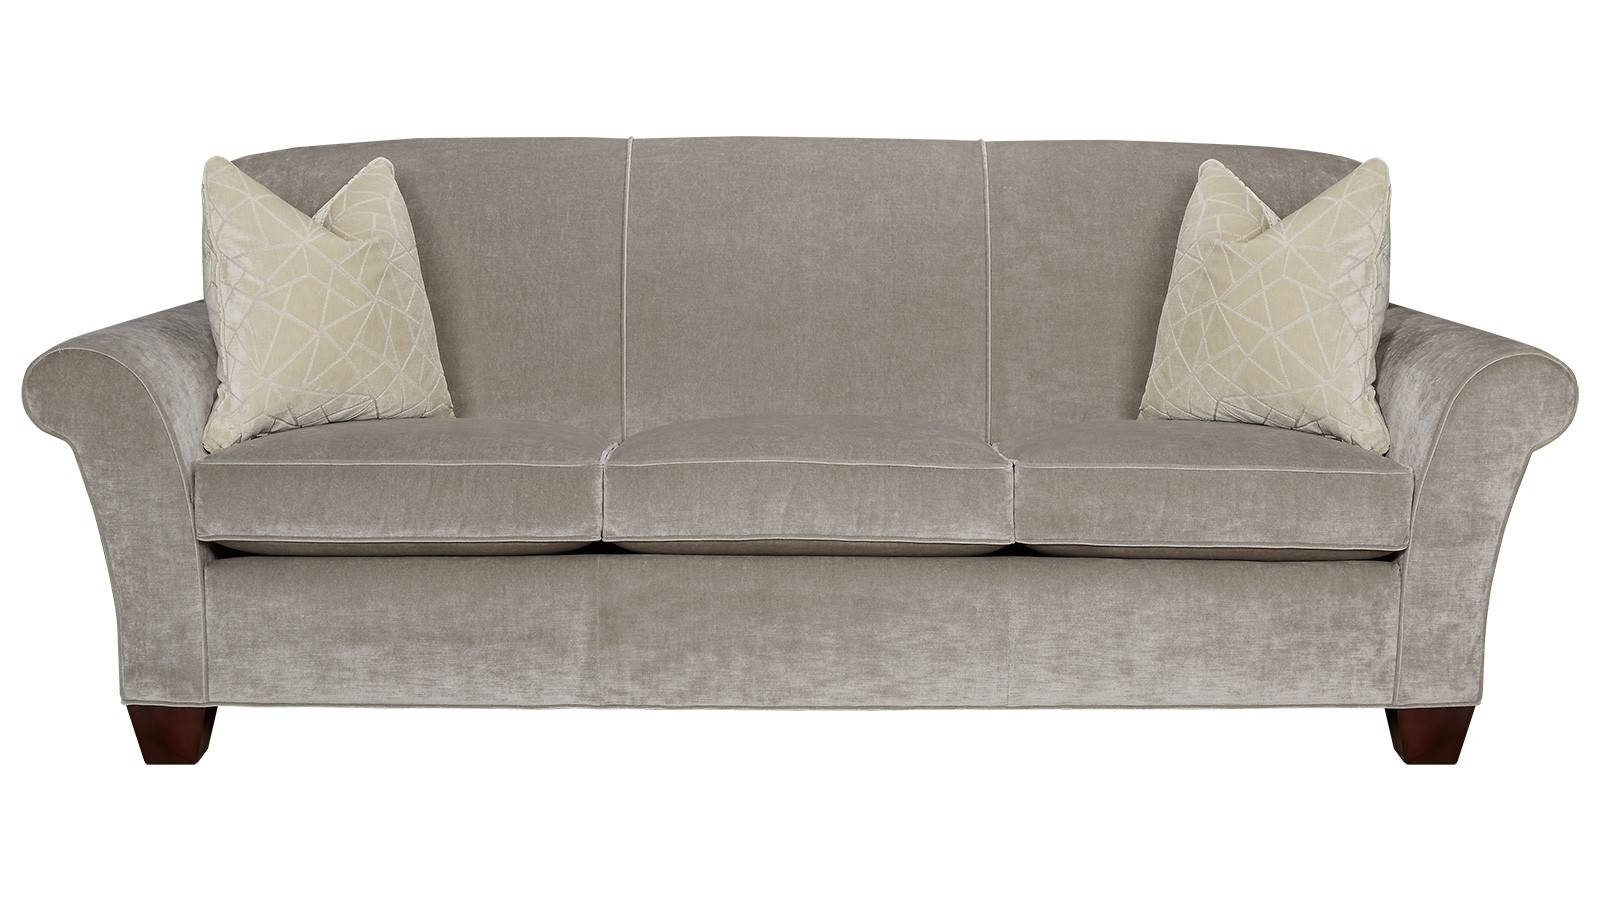 tight back sofas sofa beds australia online 2018 latest sectional